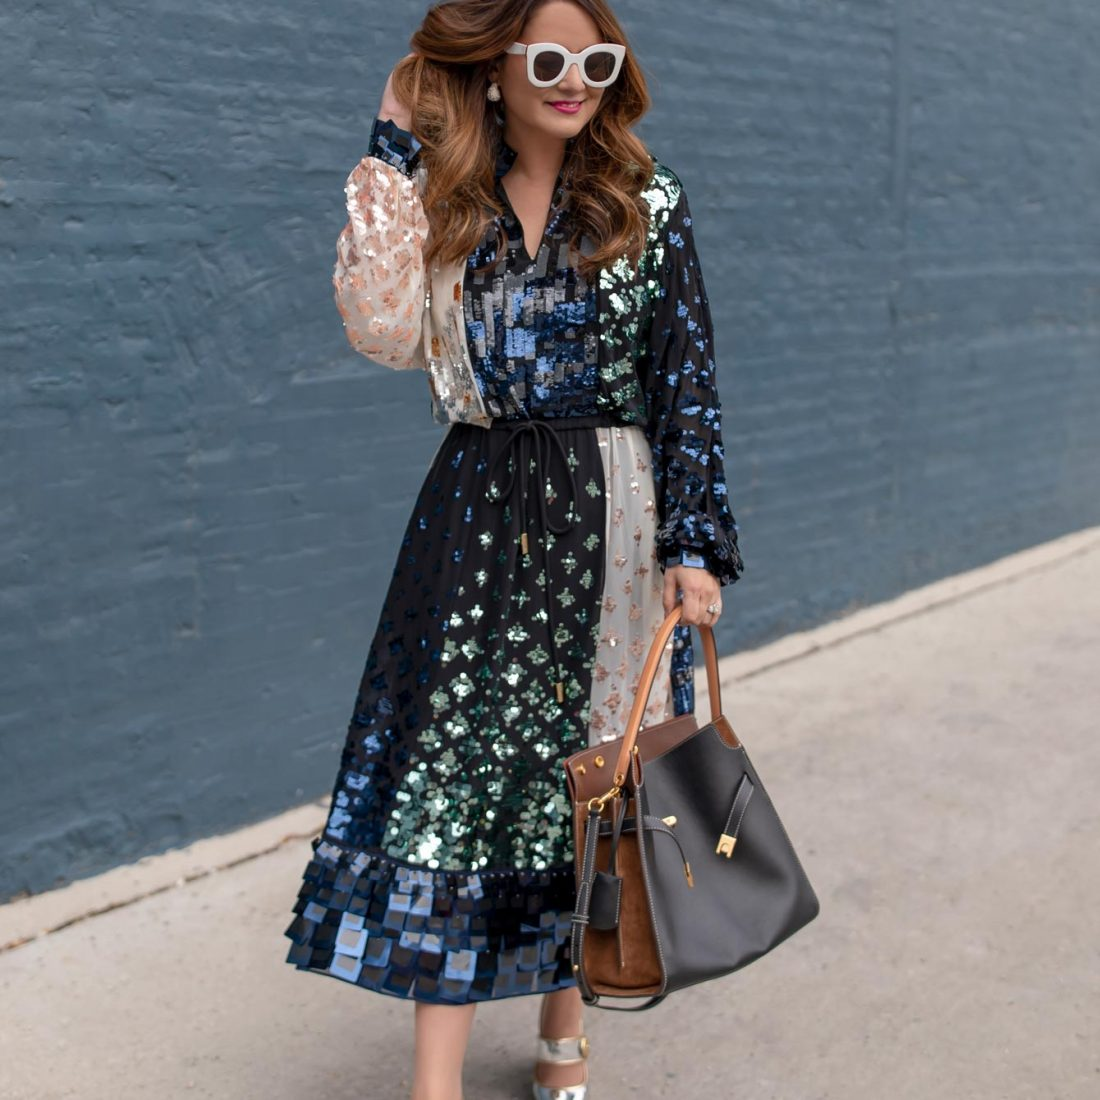 Style Charade Tory Burch